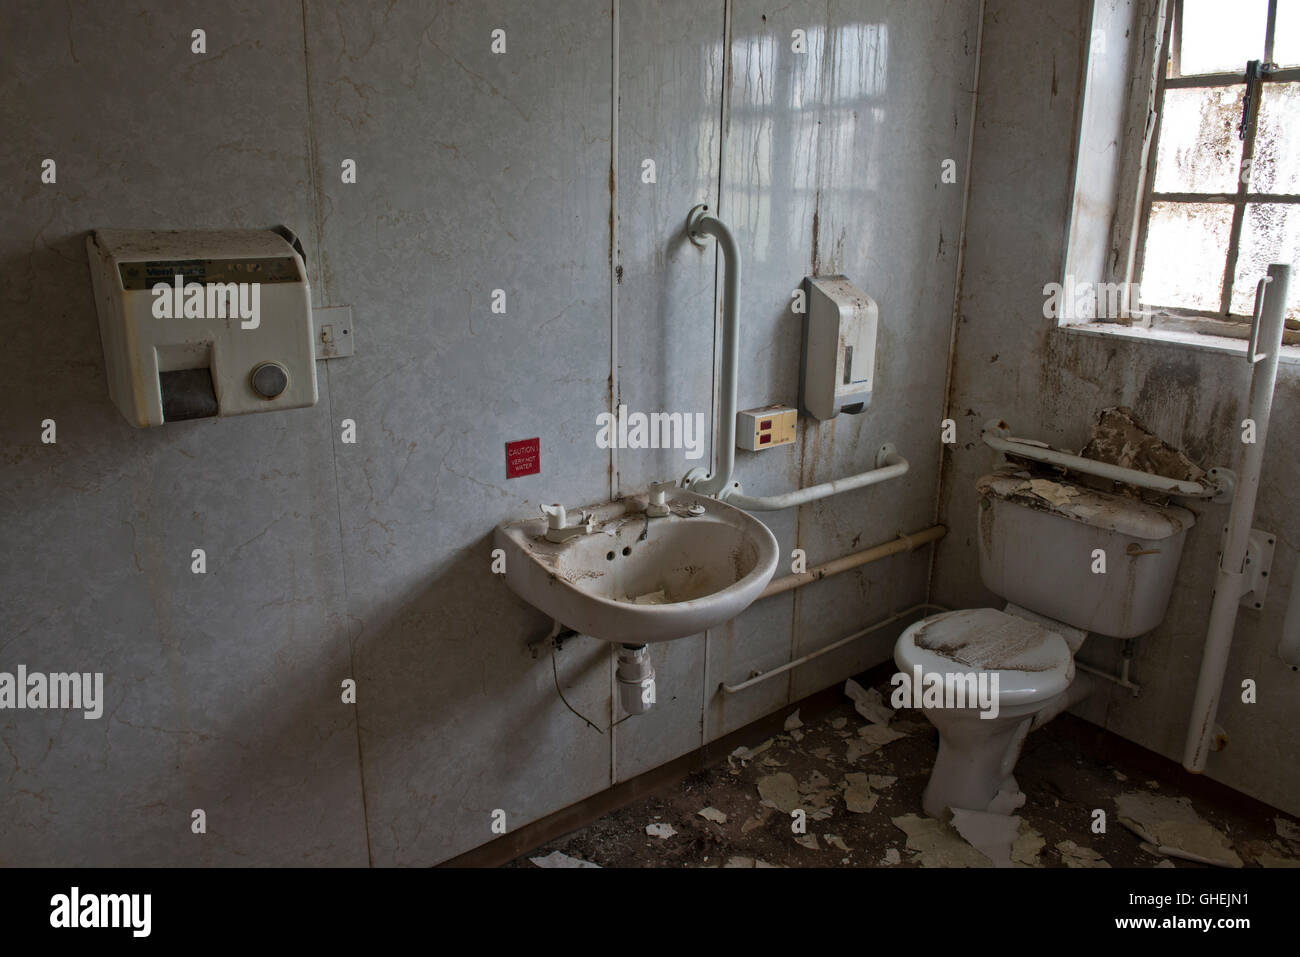 Dirty toilet inside De Salis Hall Within the closed Harperbury Hospital complex. - Stock Image